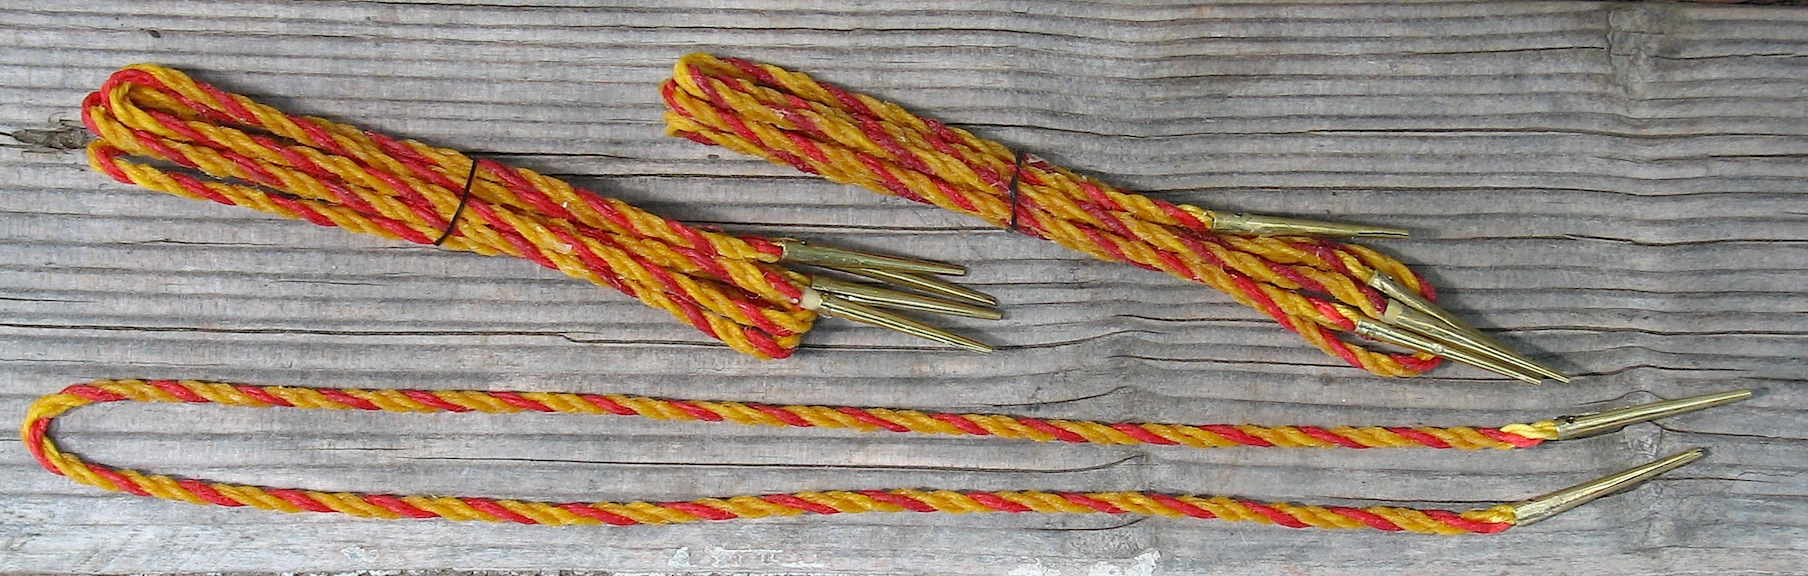 Points, hemp arming, red/yellow